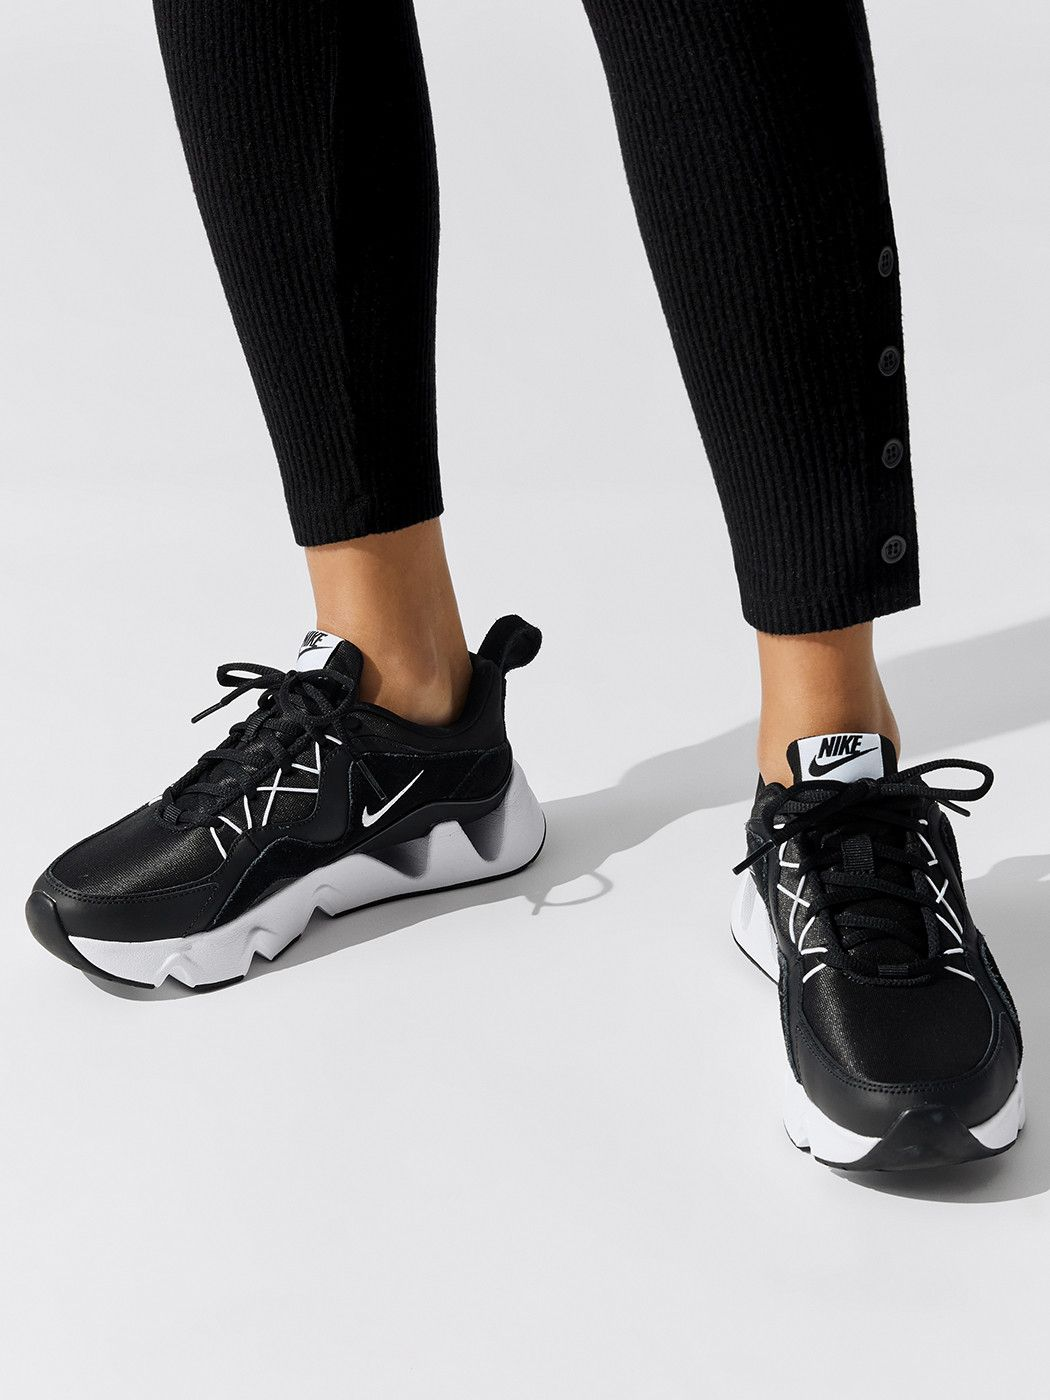 Nike Women S Nike Ryz 365 Nike Shoes In 2020 Nike Women Nike Fashion Nike